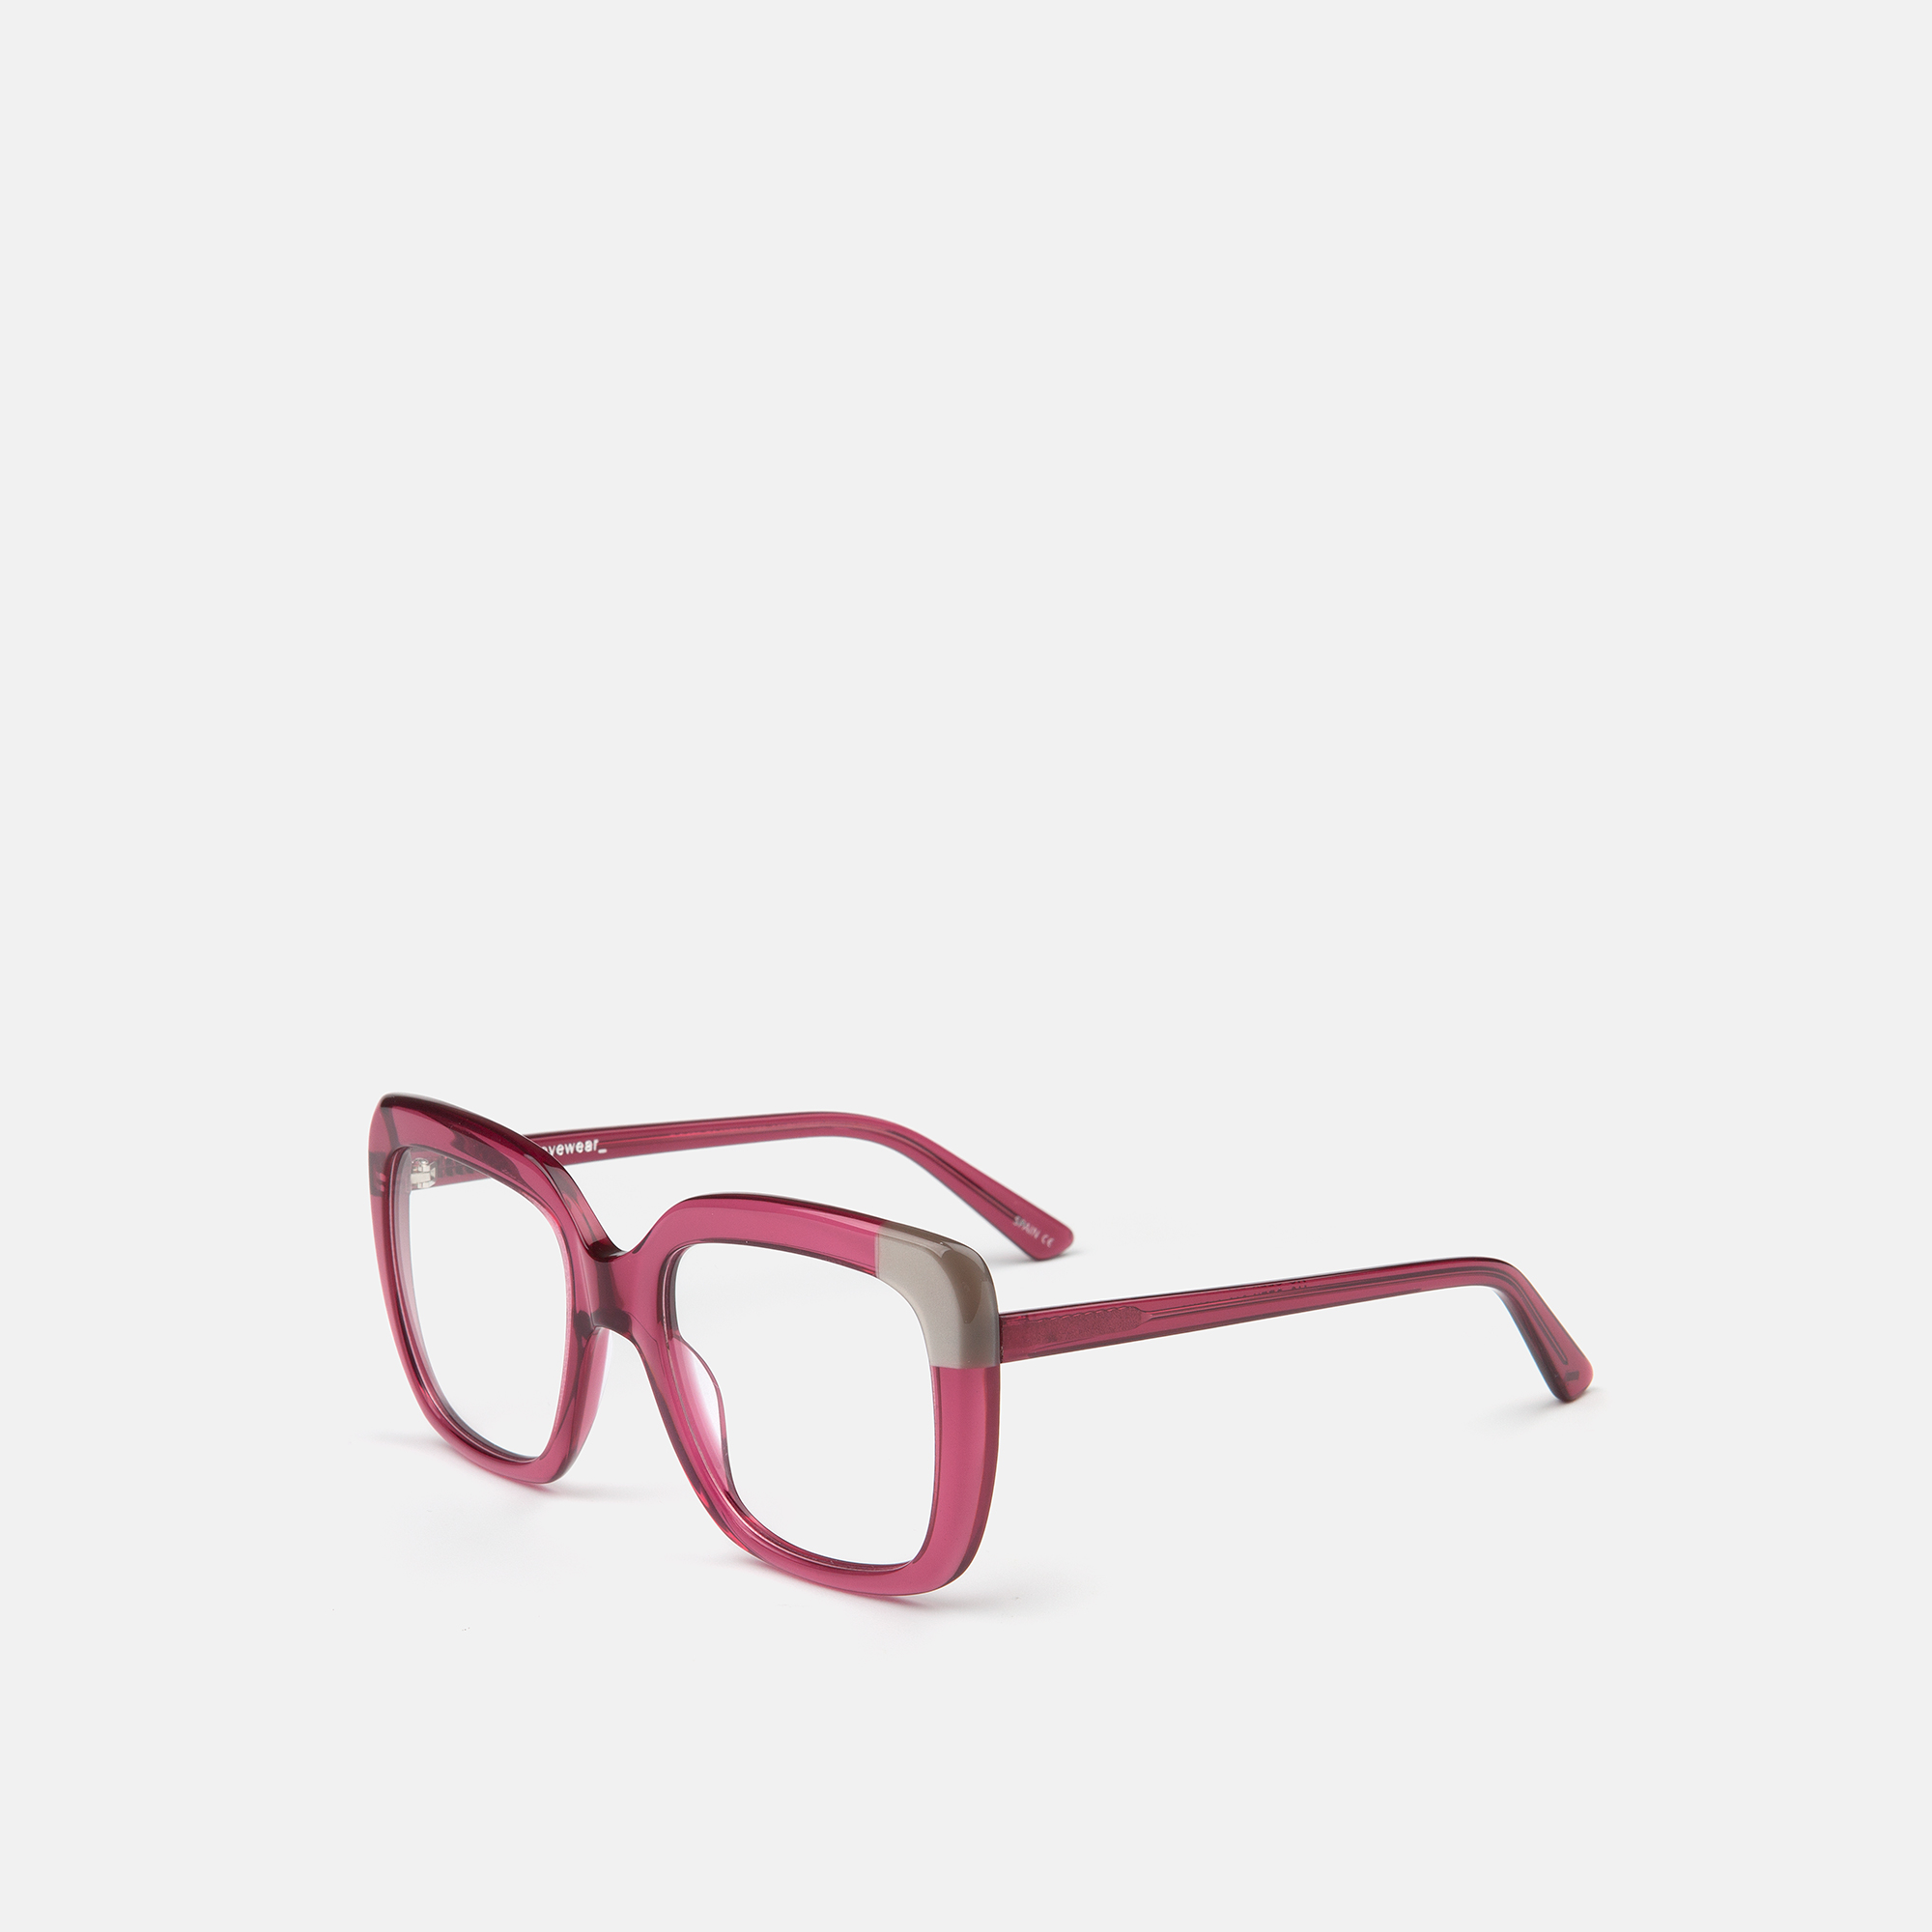 mó geek 61A A, pink/grey, hi-res